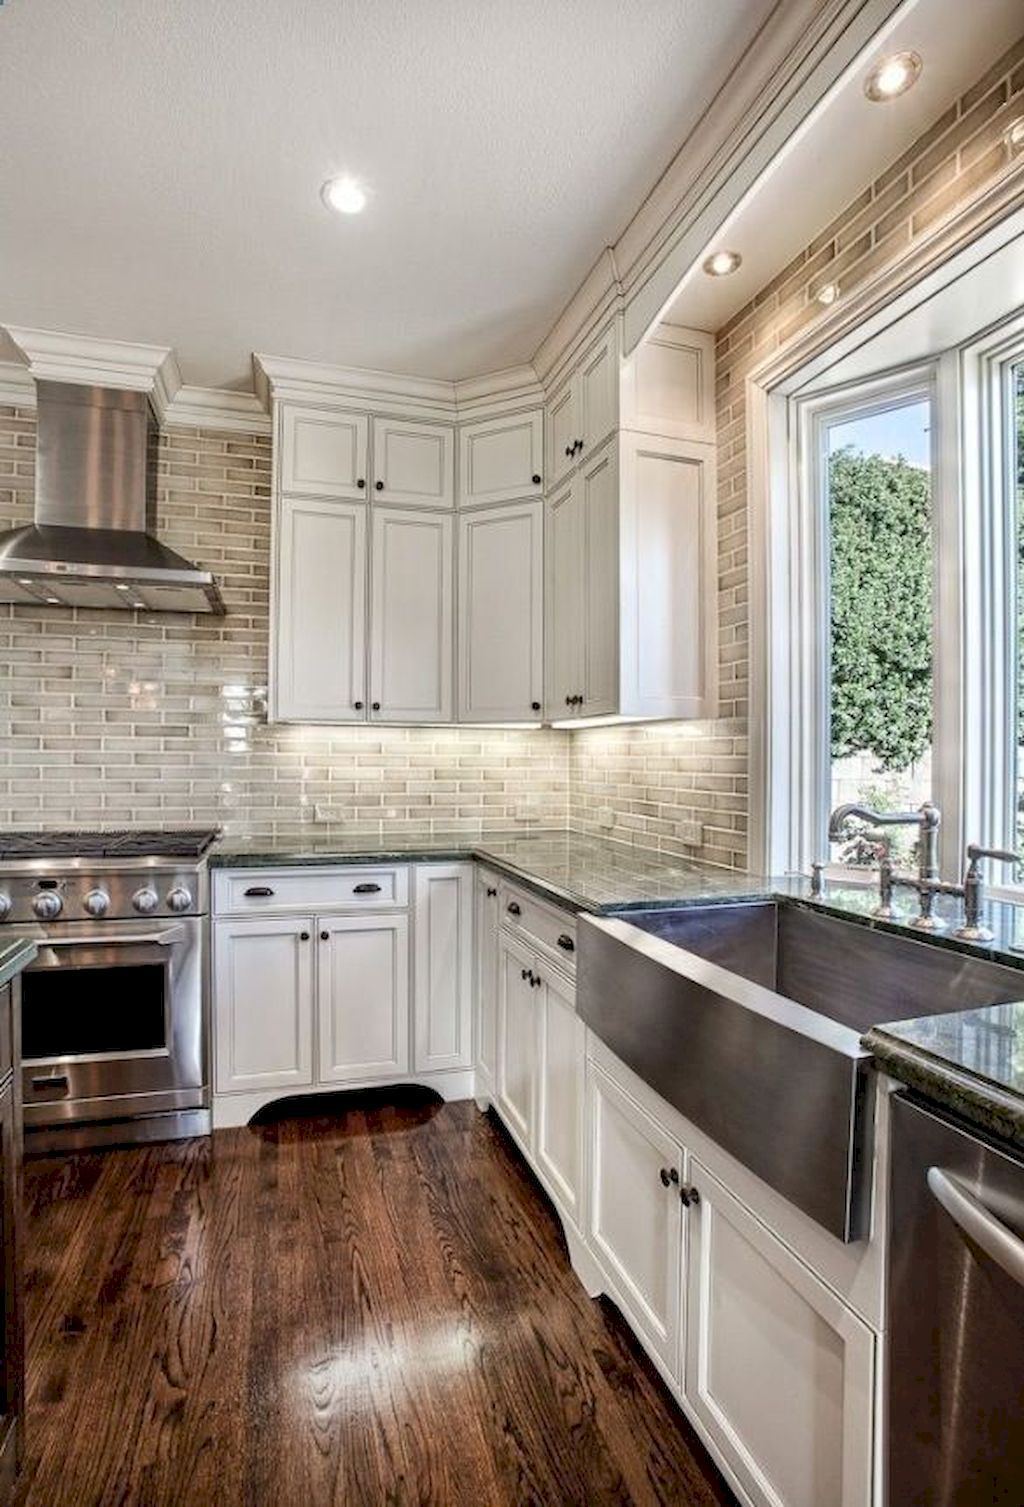 best rustic farmhouse kitchen cabinets in list 85 classic white kitchen white kitchen on farmhouse kitchen cabinets id=58962